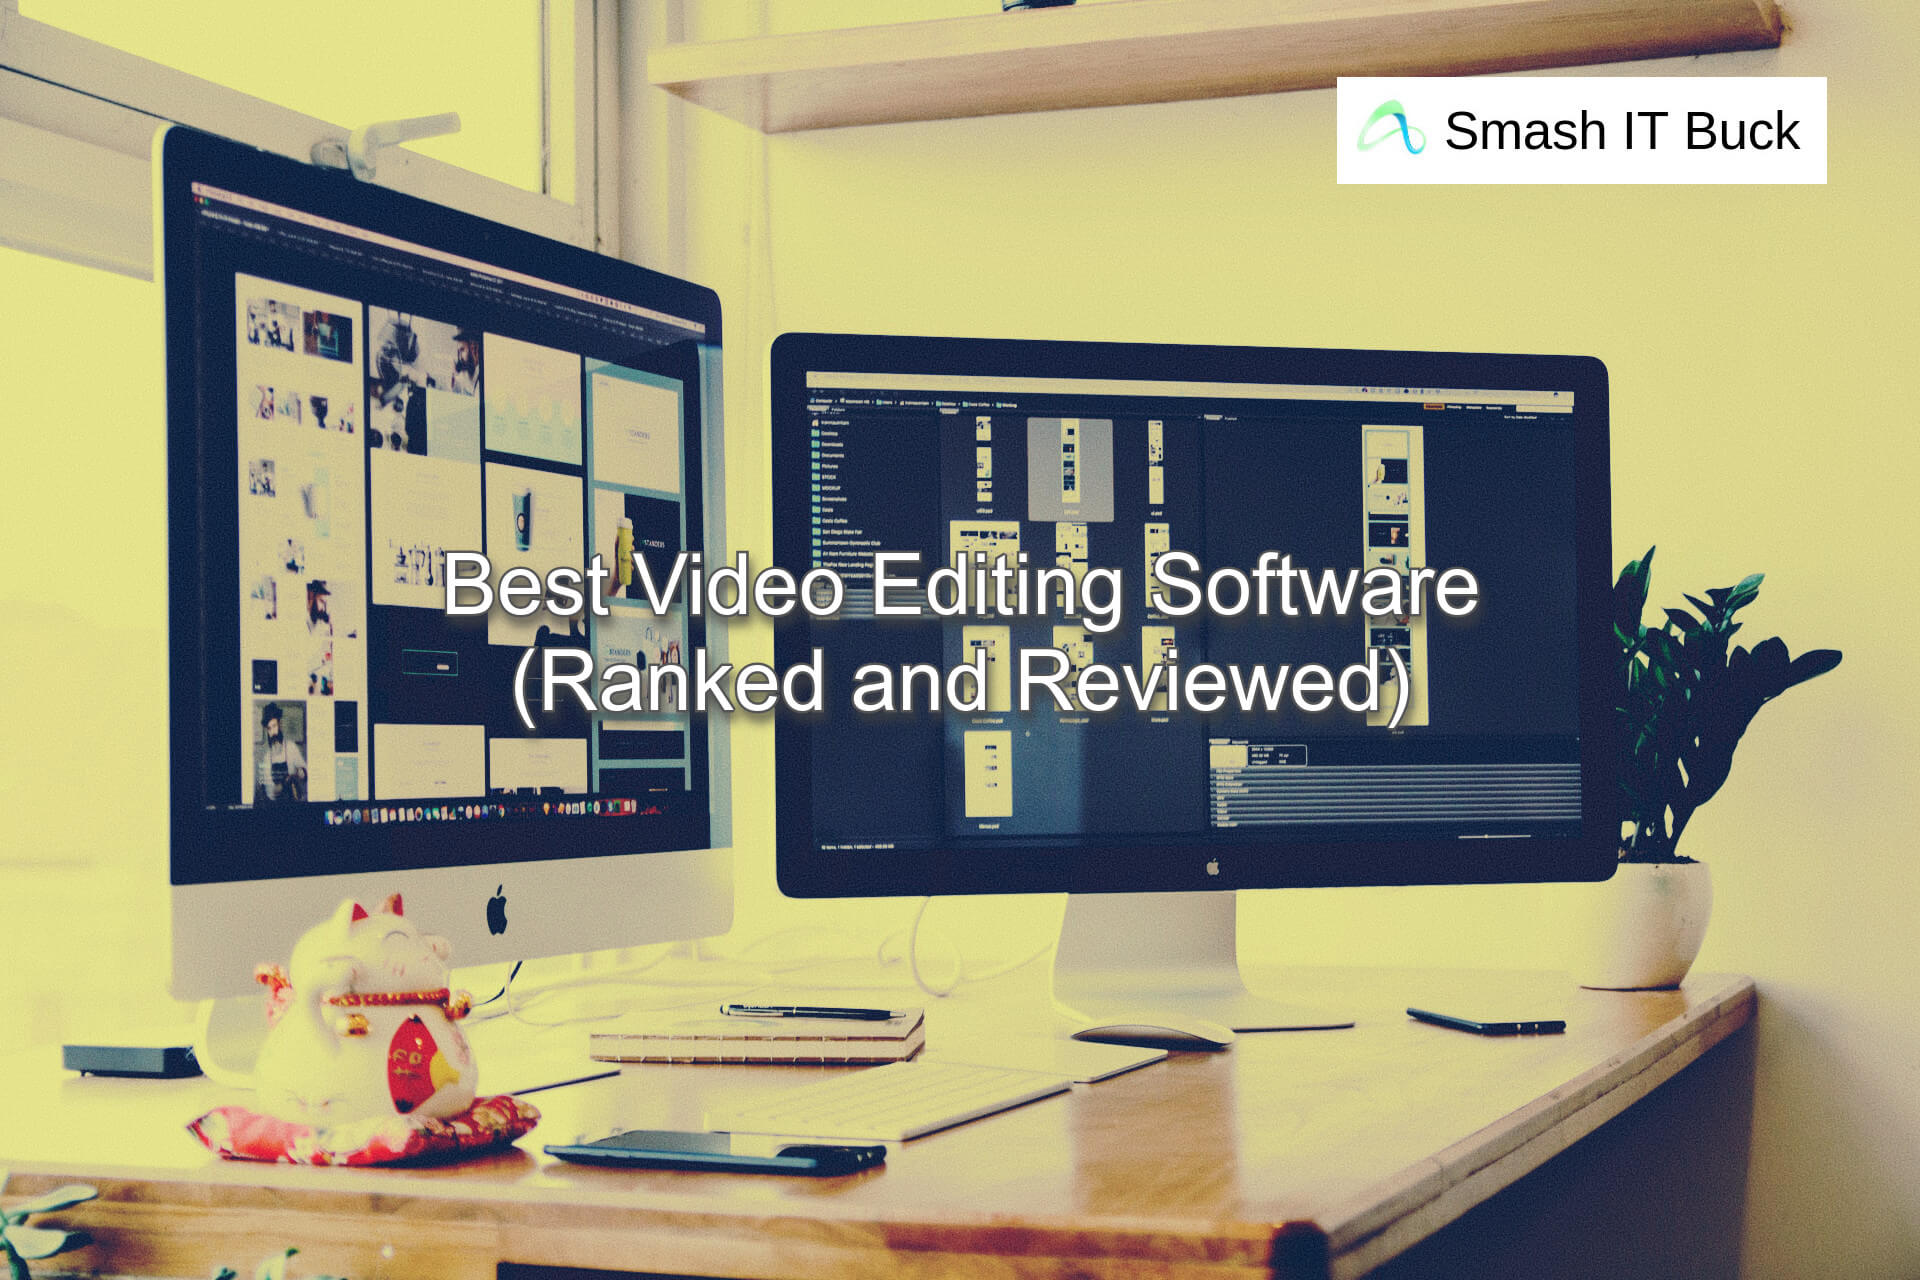 Best Video Editing Software to use in 2021